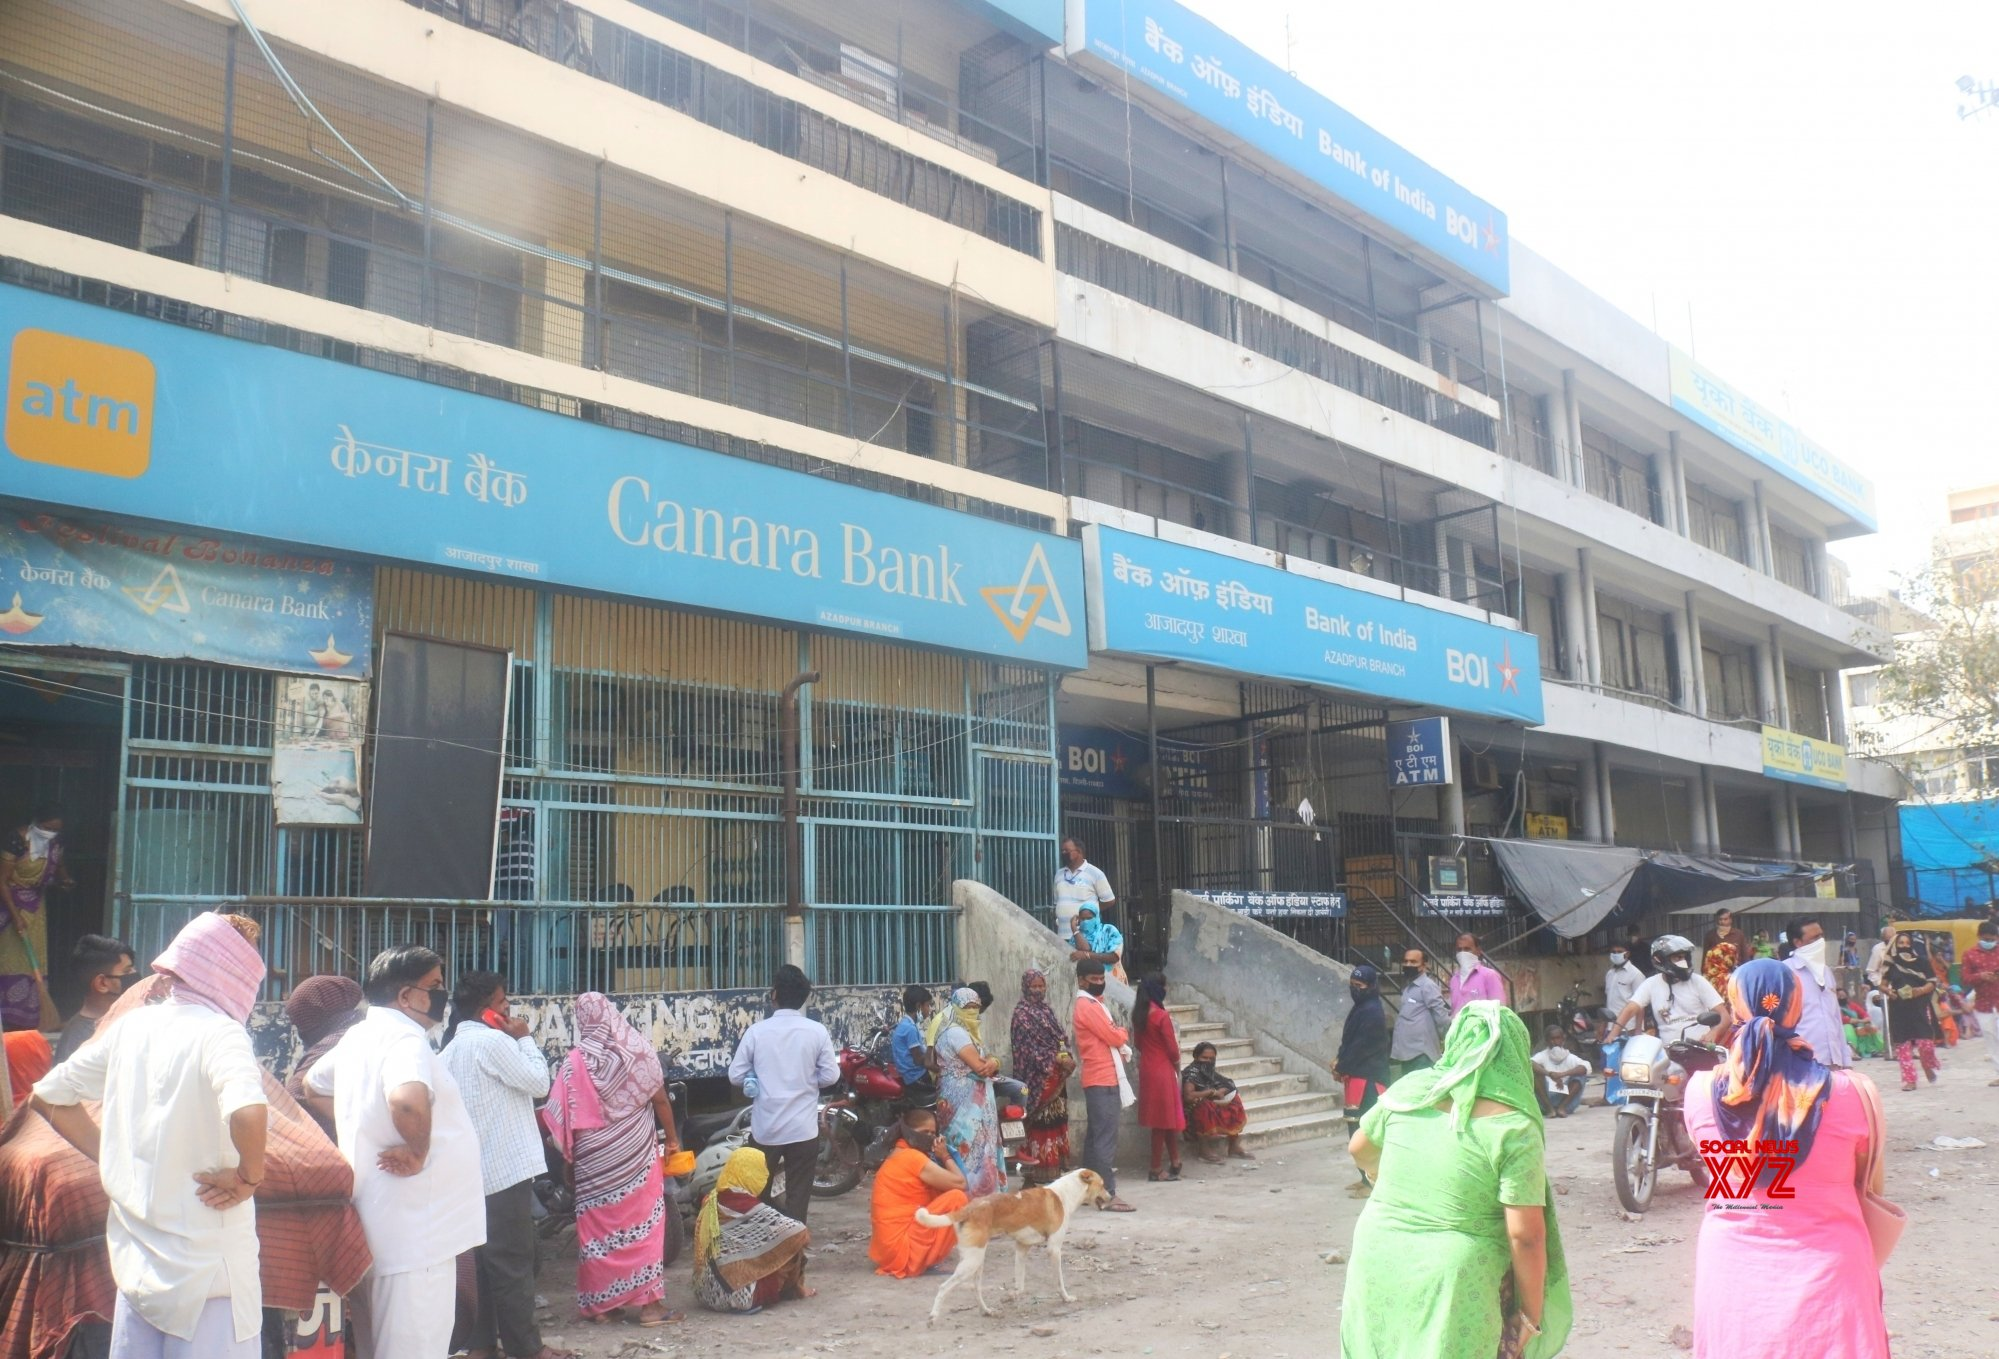 New Delhi: People waiting outside Canara Bank during extended nationwide lockdown #Gallery